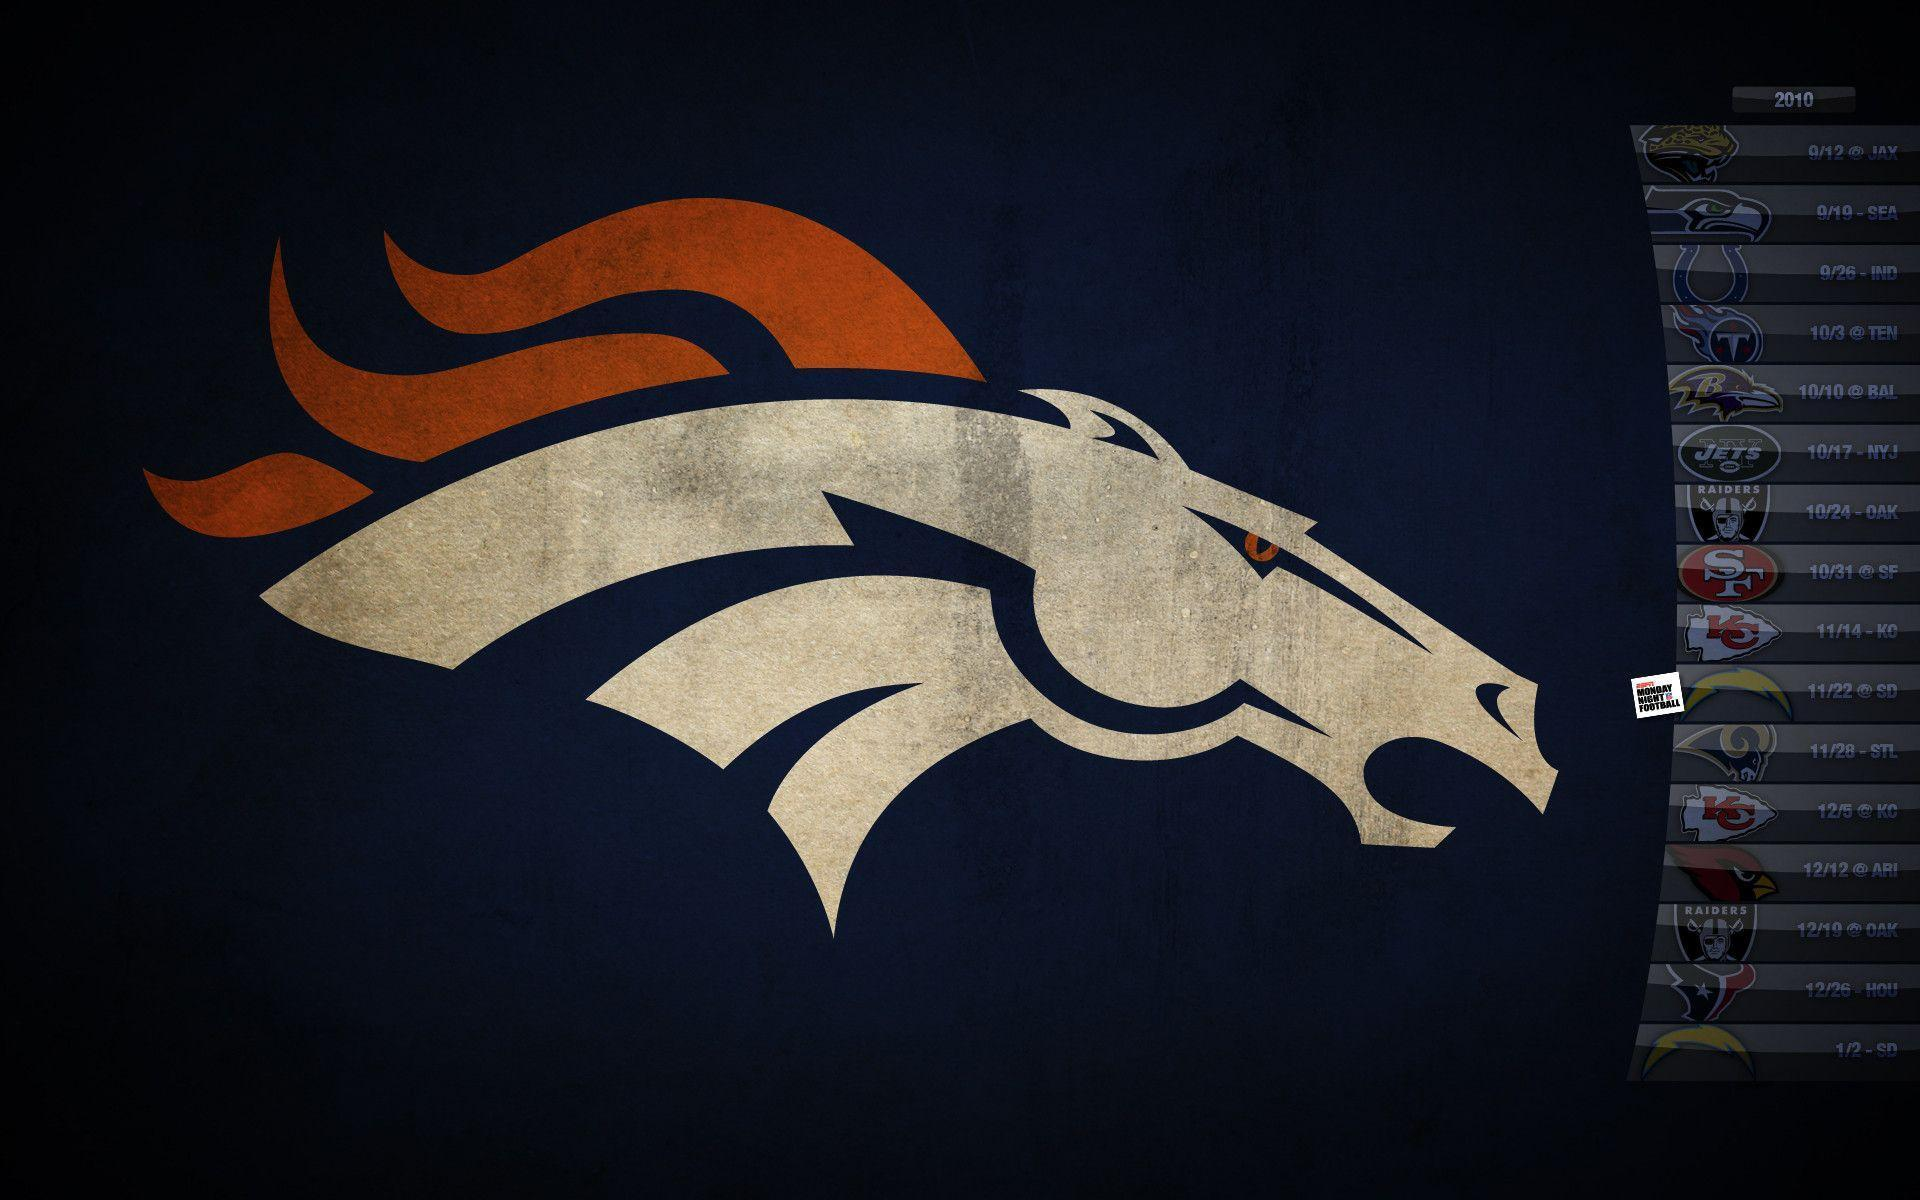 Enjoy our wallpapers of the month!!! Denver Broncos